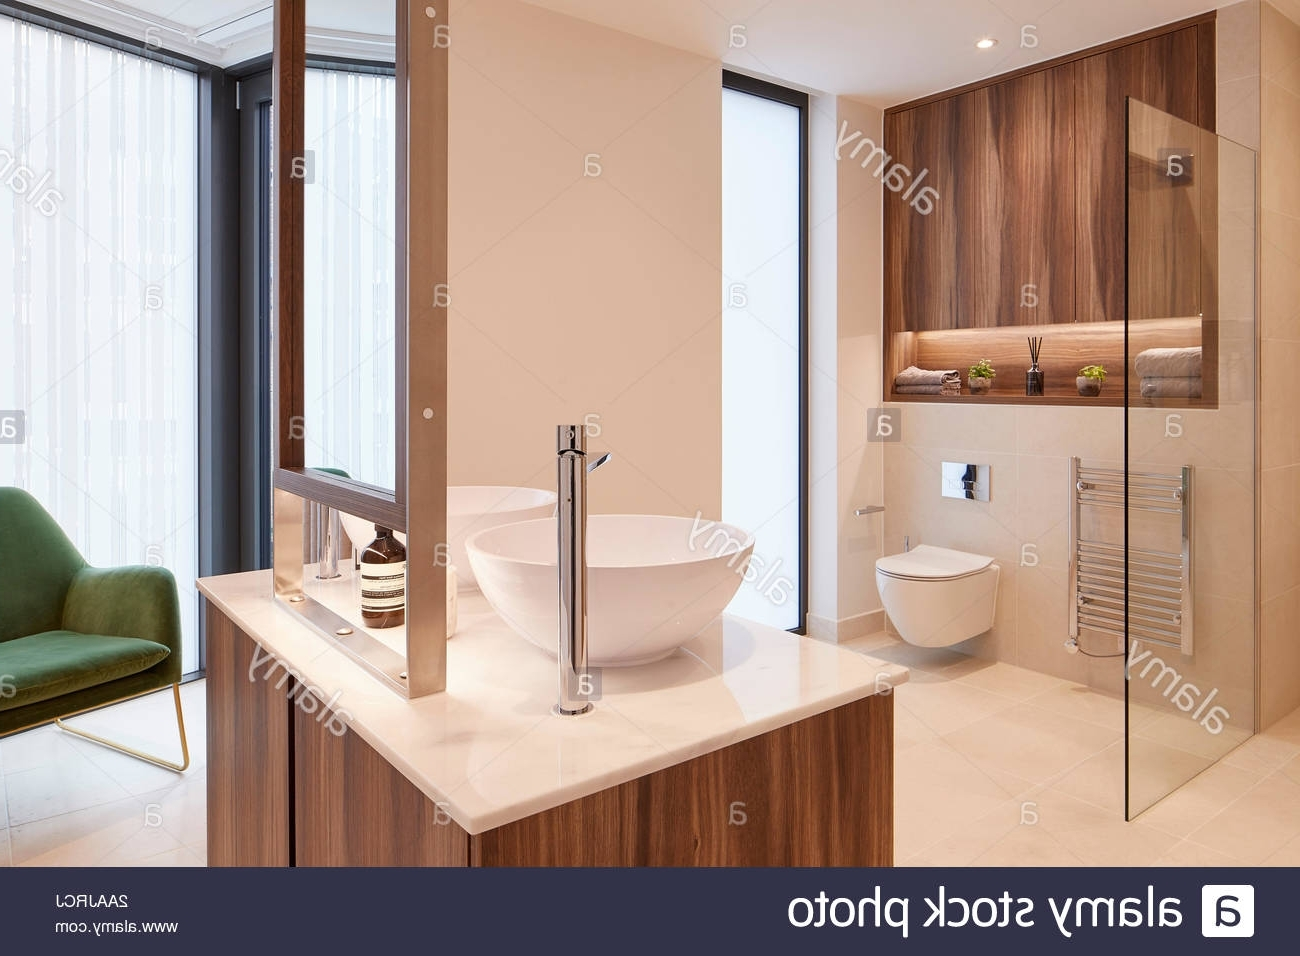 Ensuite Bathroom. Warriner Gardens, London, United Kingdom 20+ Ensuite Bathroom 2019 Inspirations